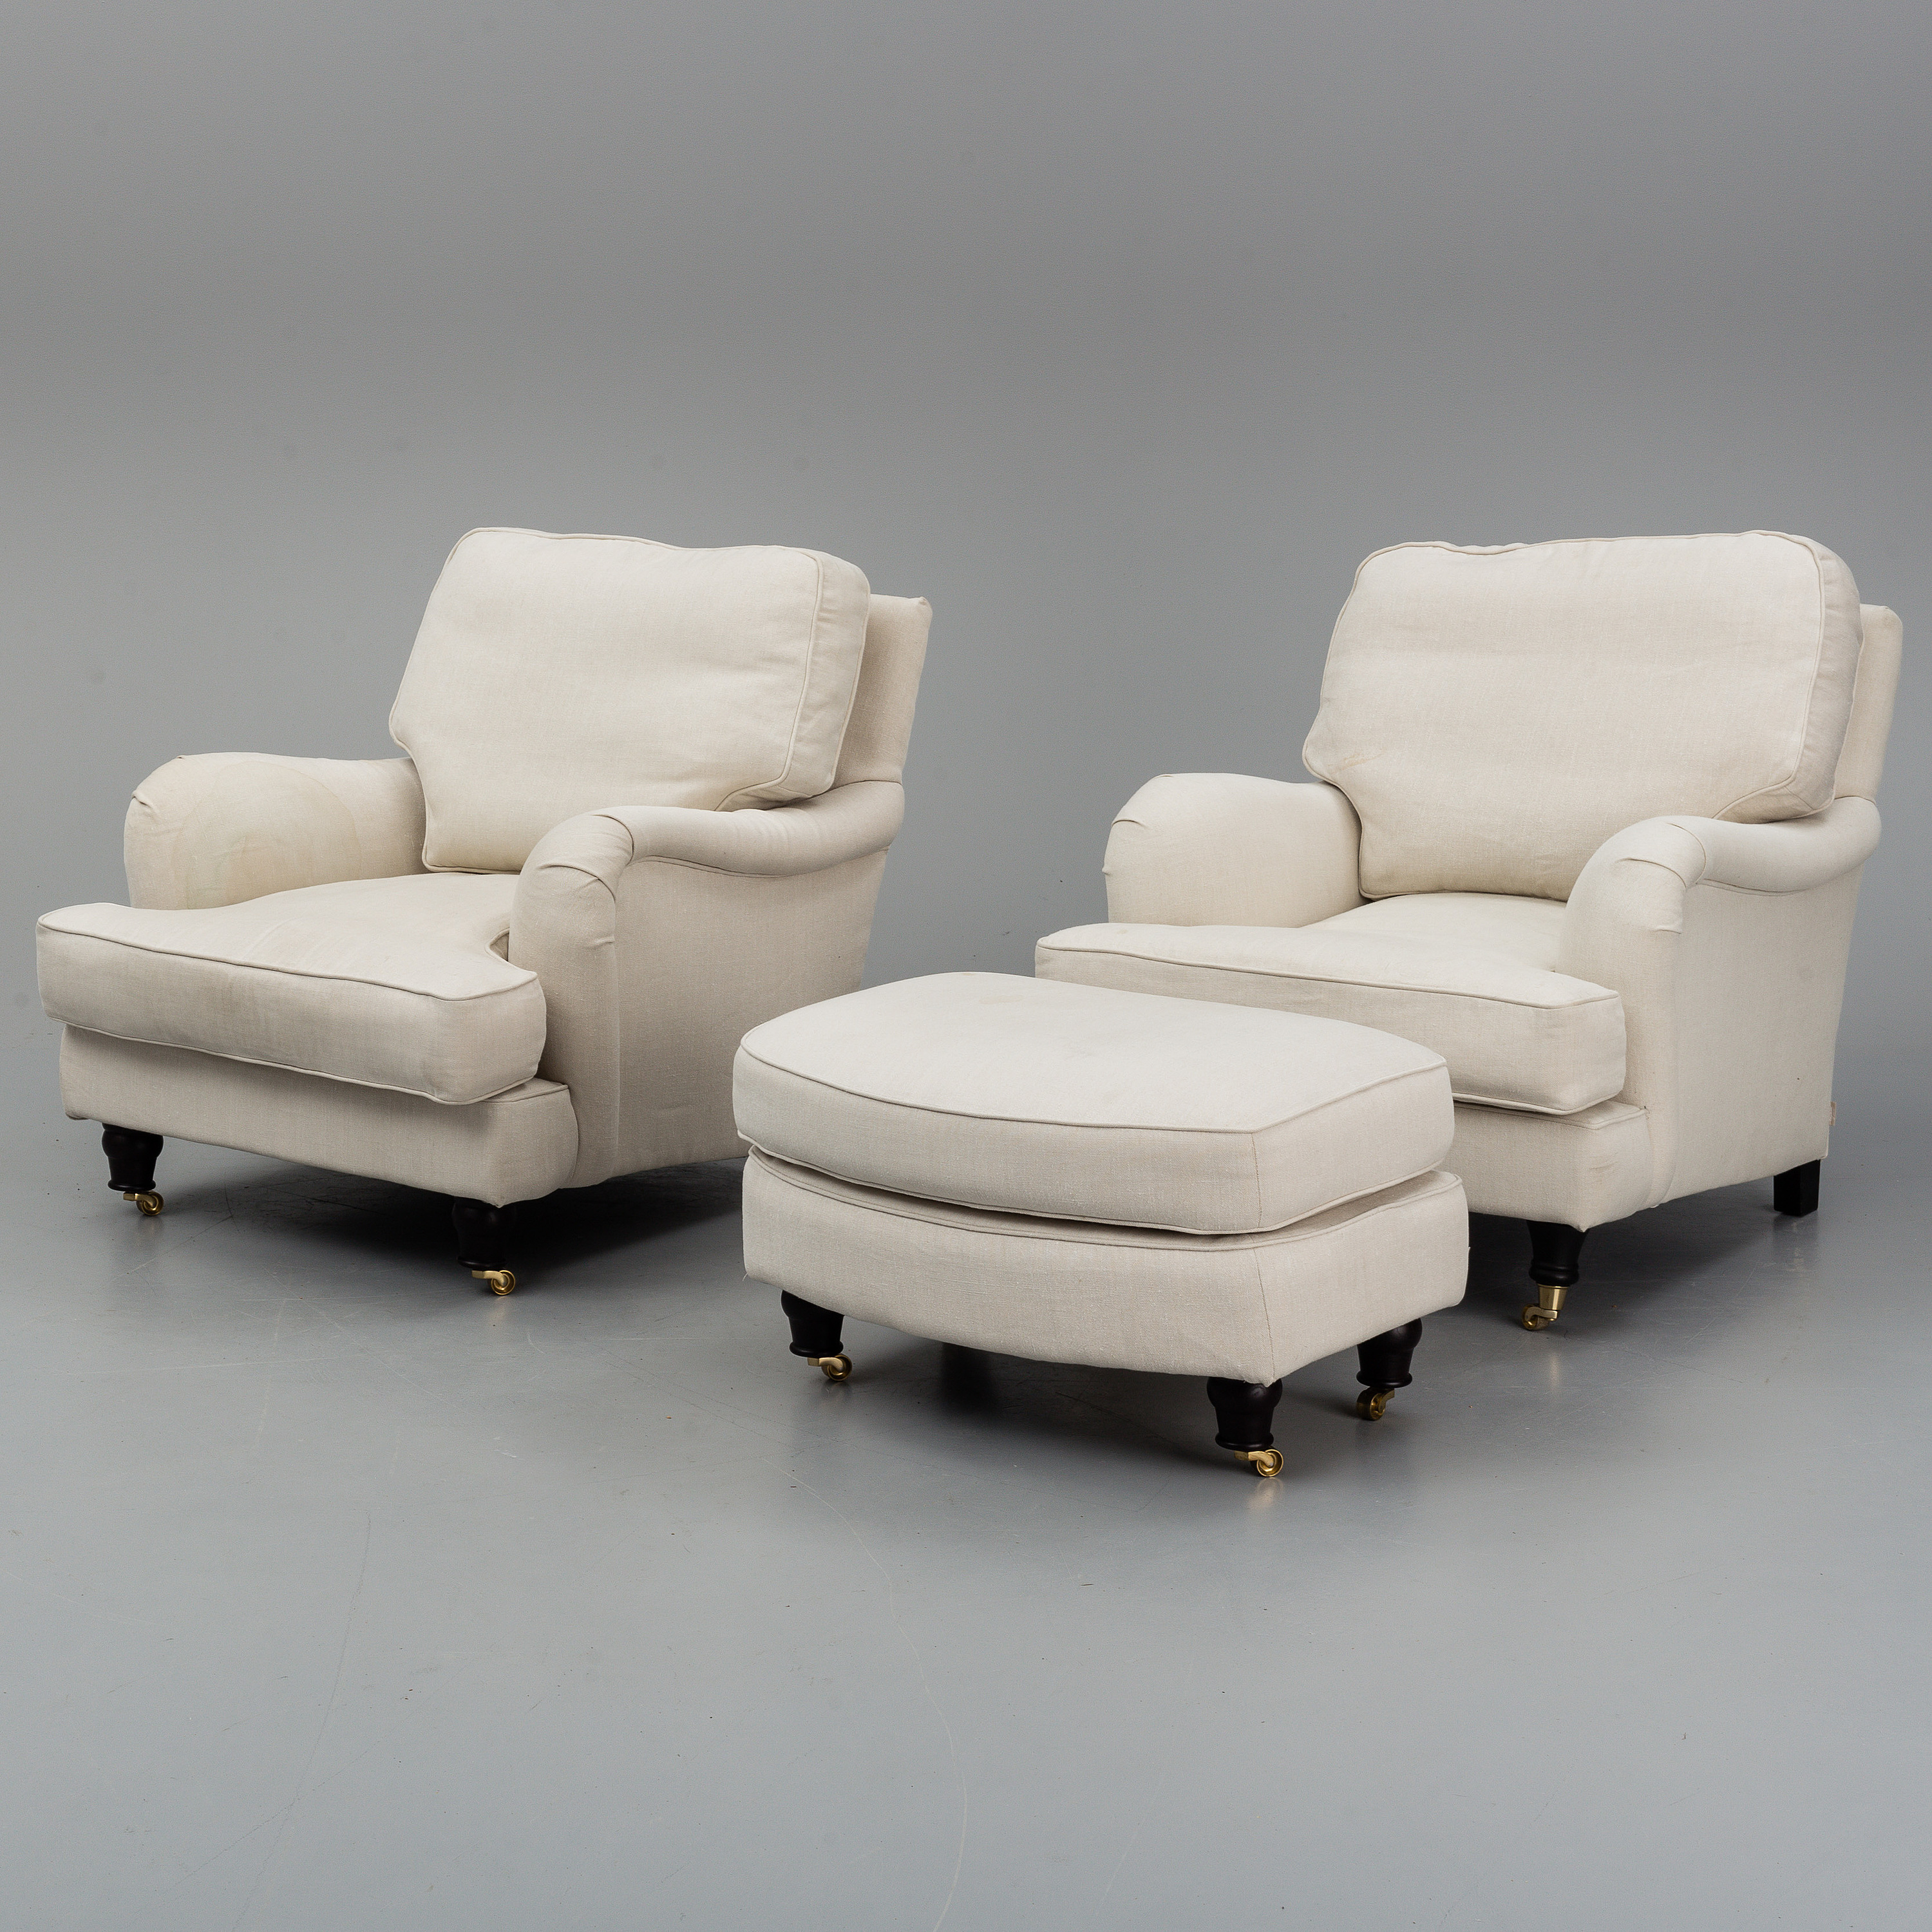 Excellent A Pair Of Easy Chairs With One Foot Rest Englesson Bukowskis Machost Co Dining Chair Design Ideas Machostcouk